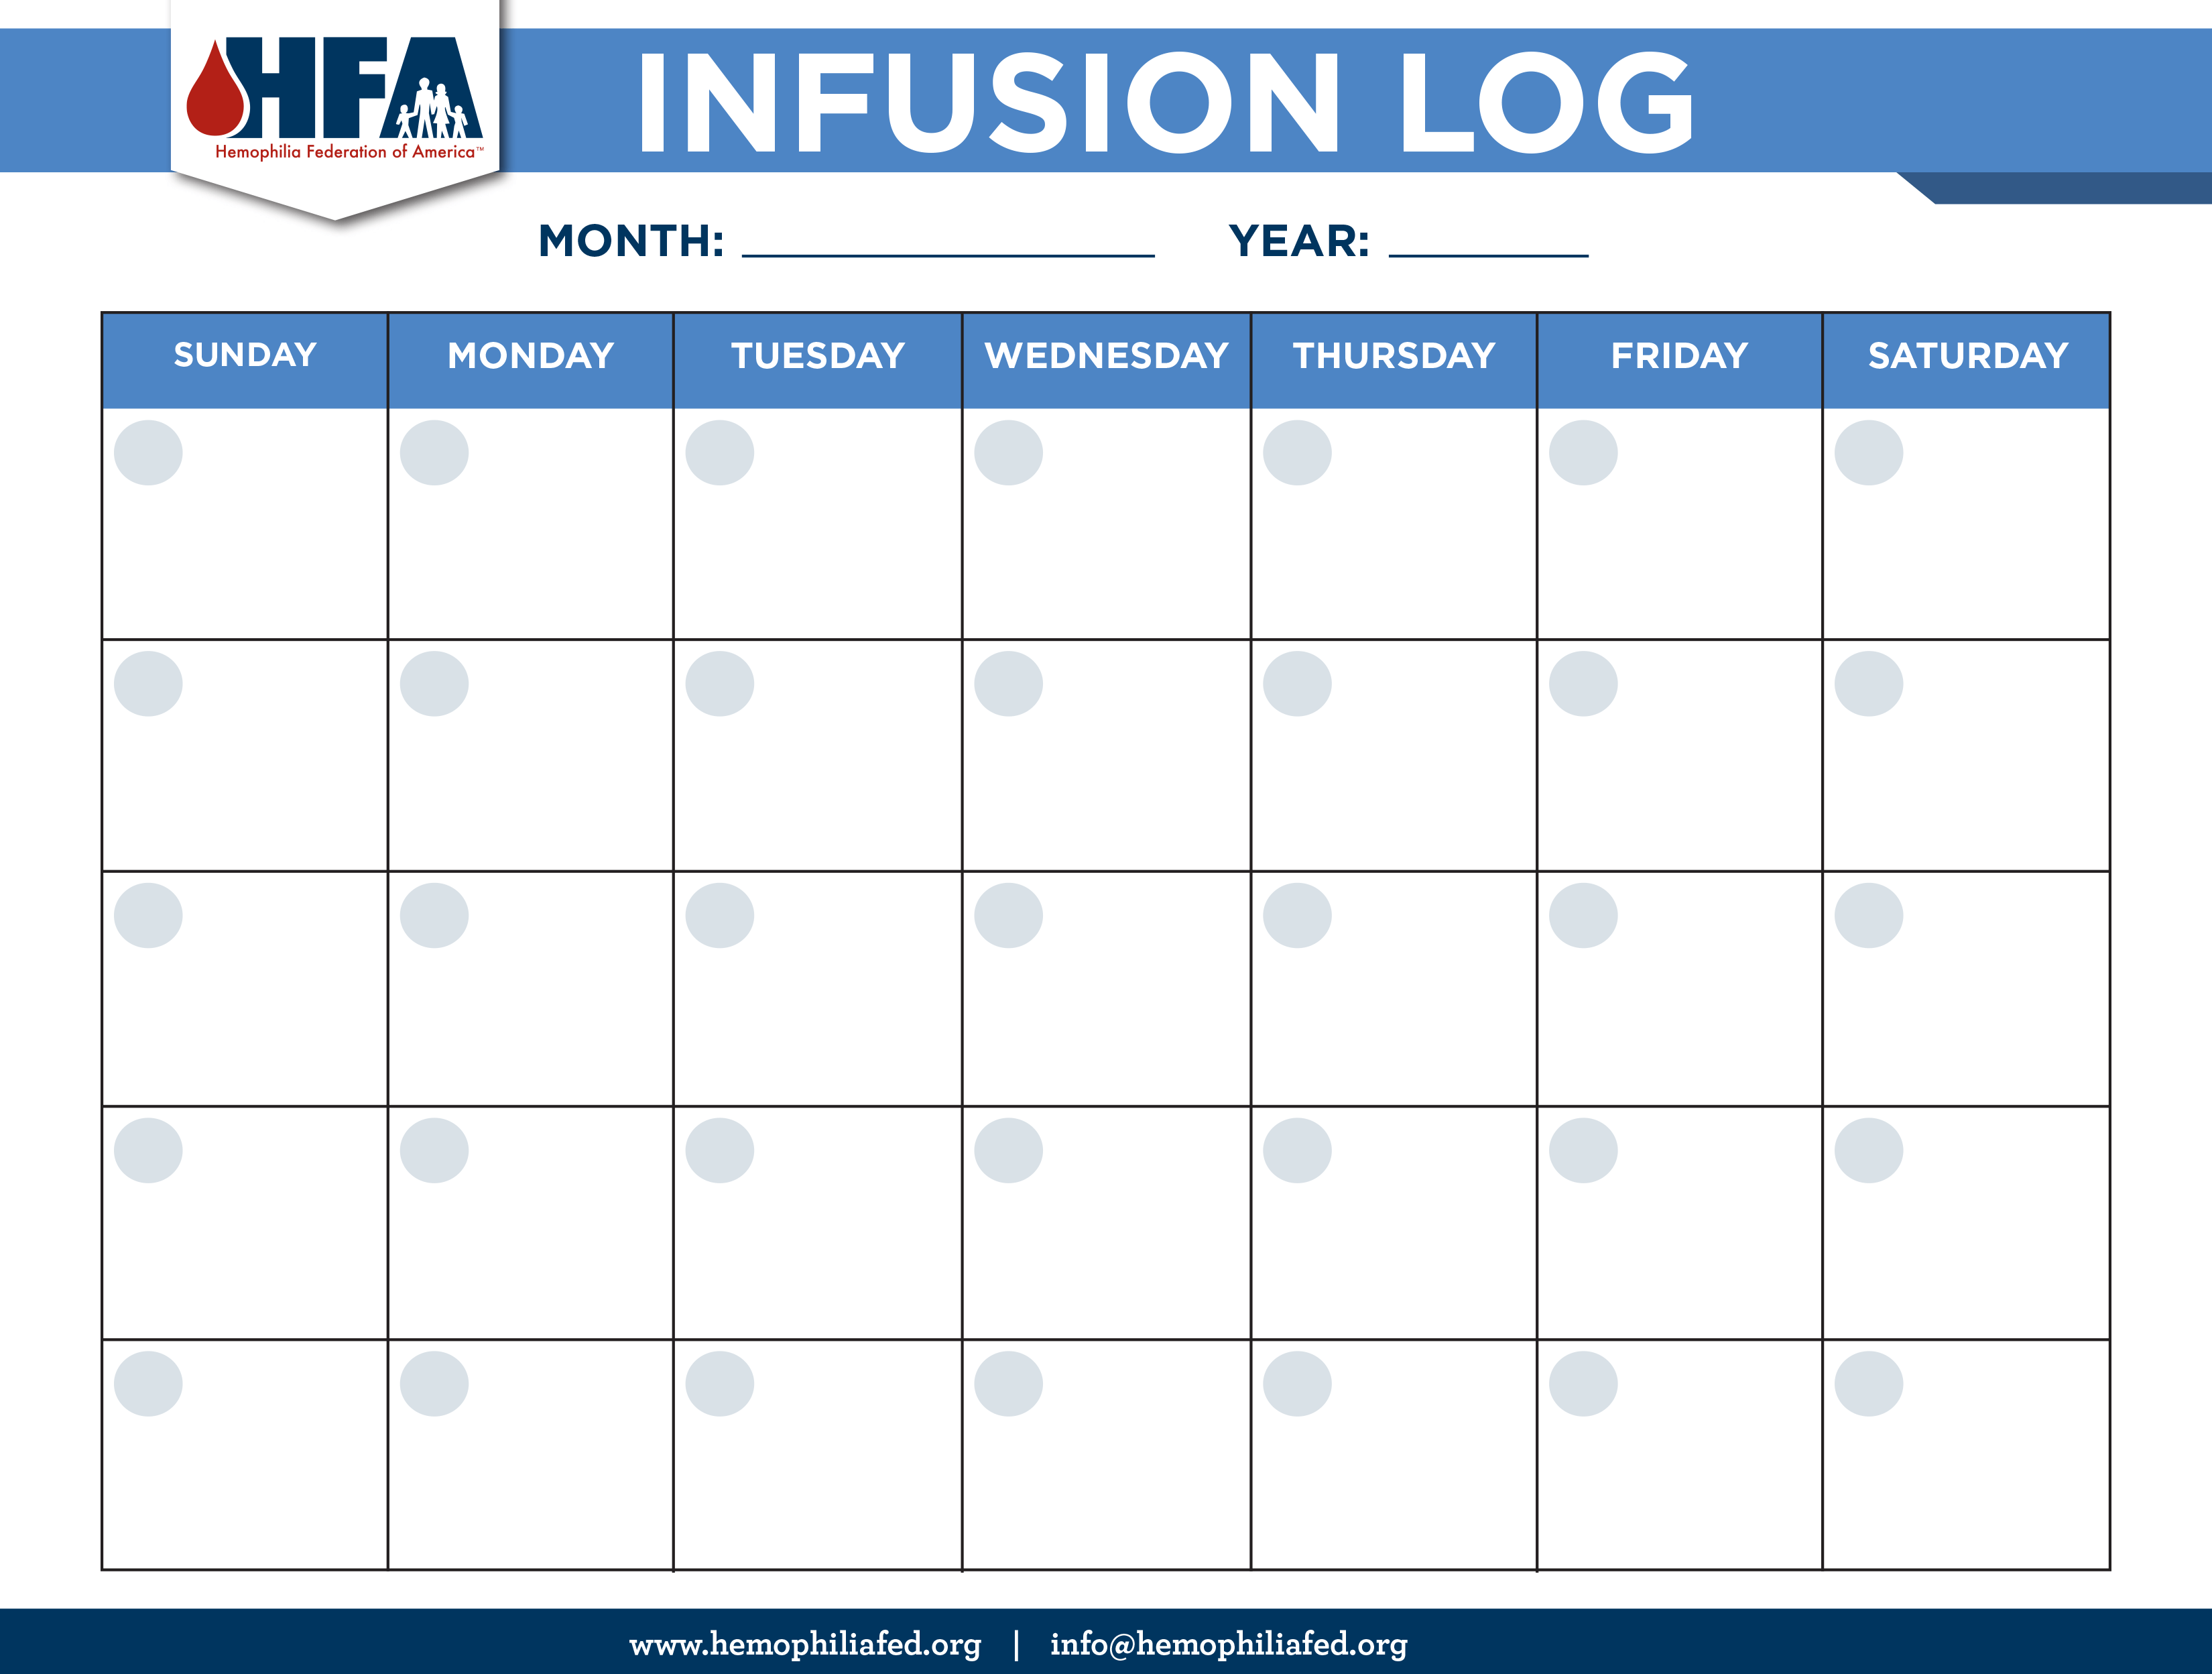 infusion log_image